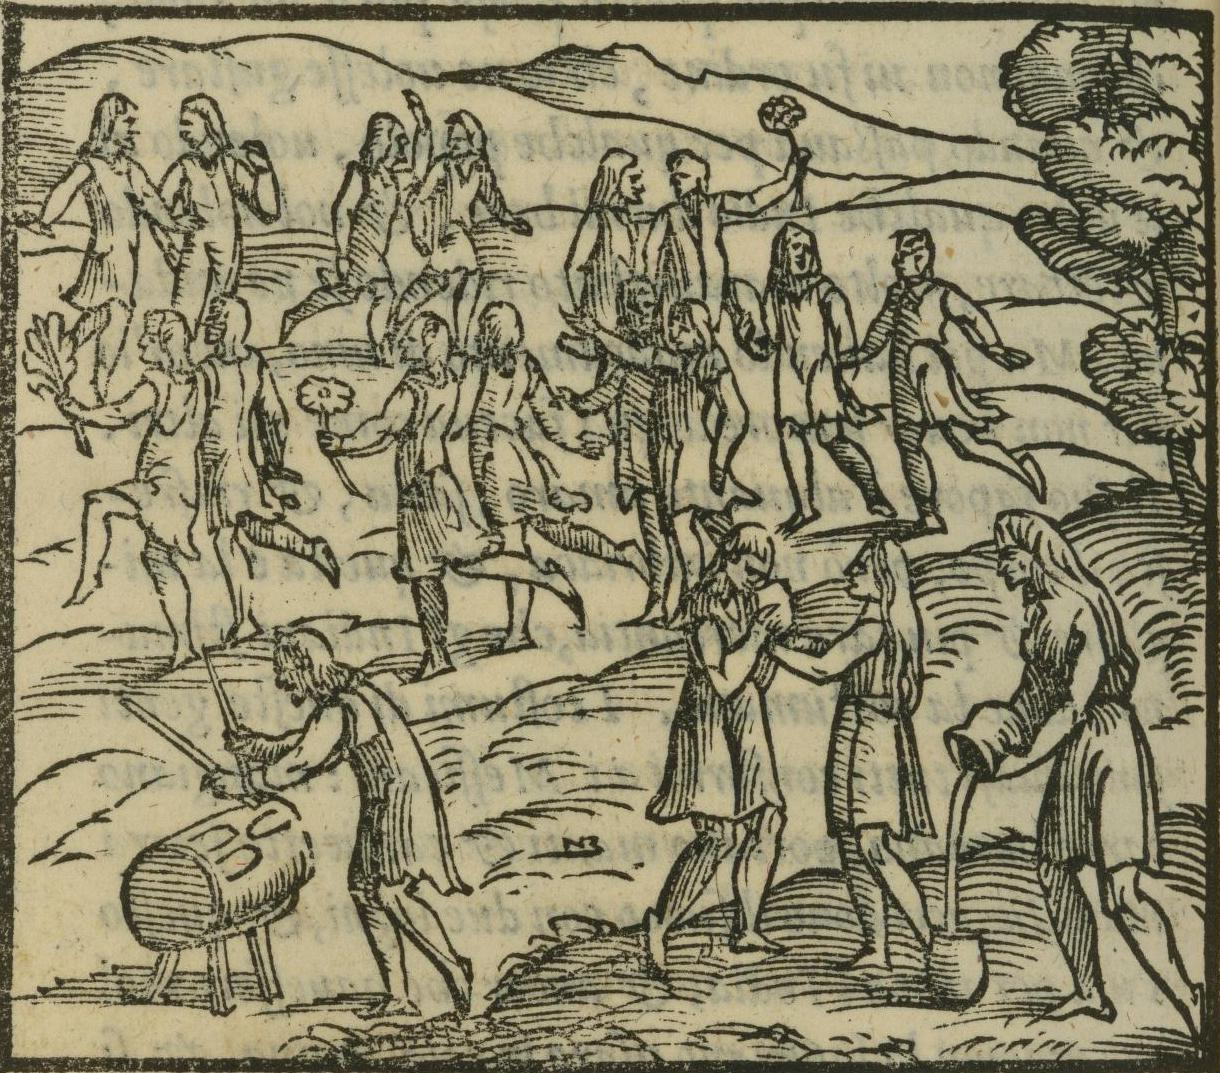 etching of large group of people dancing and drinking from vats in rolling hills